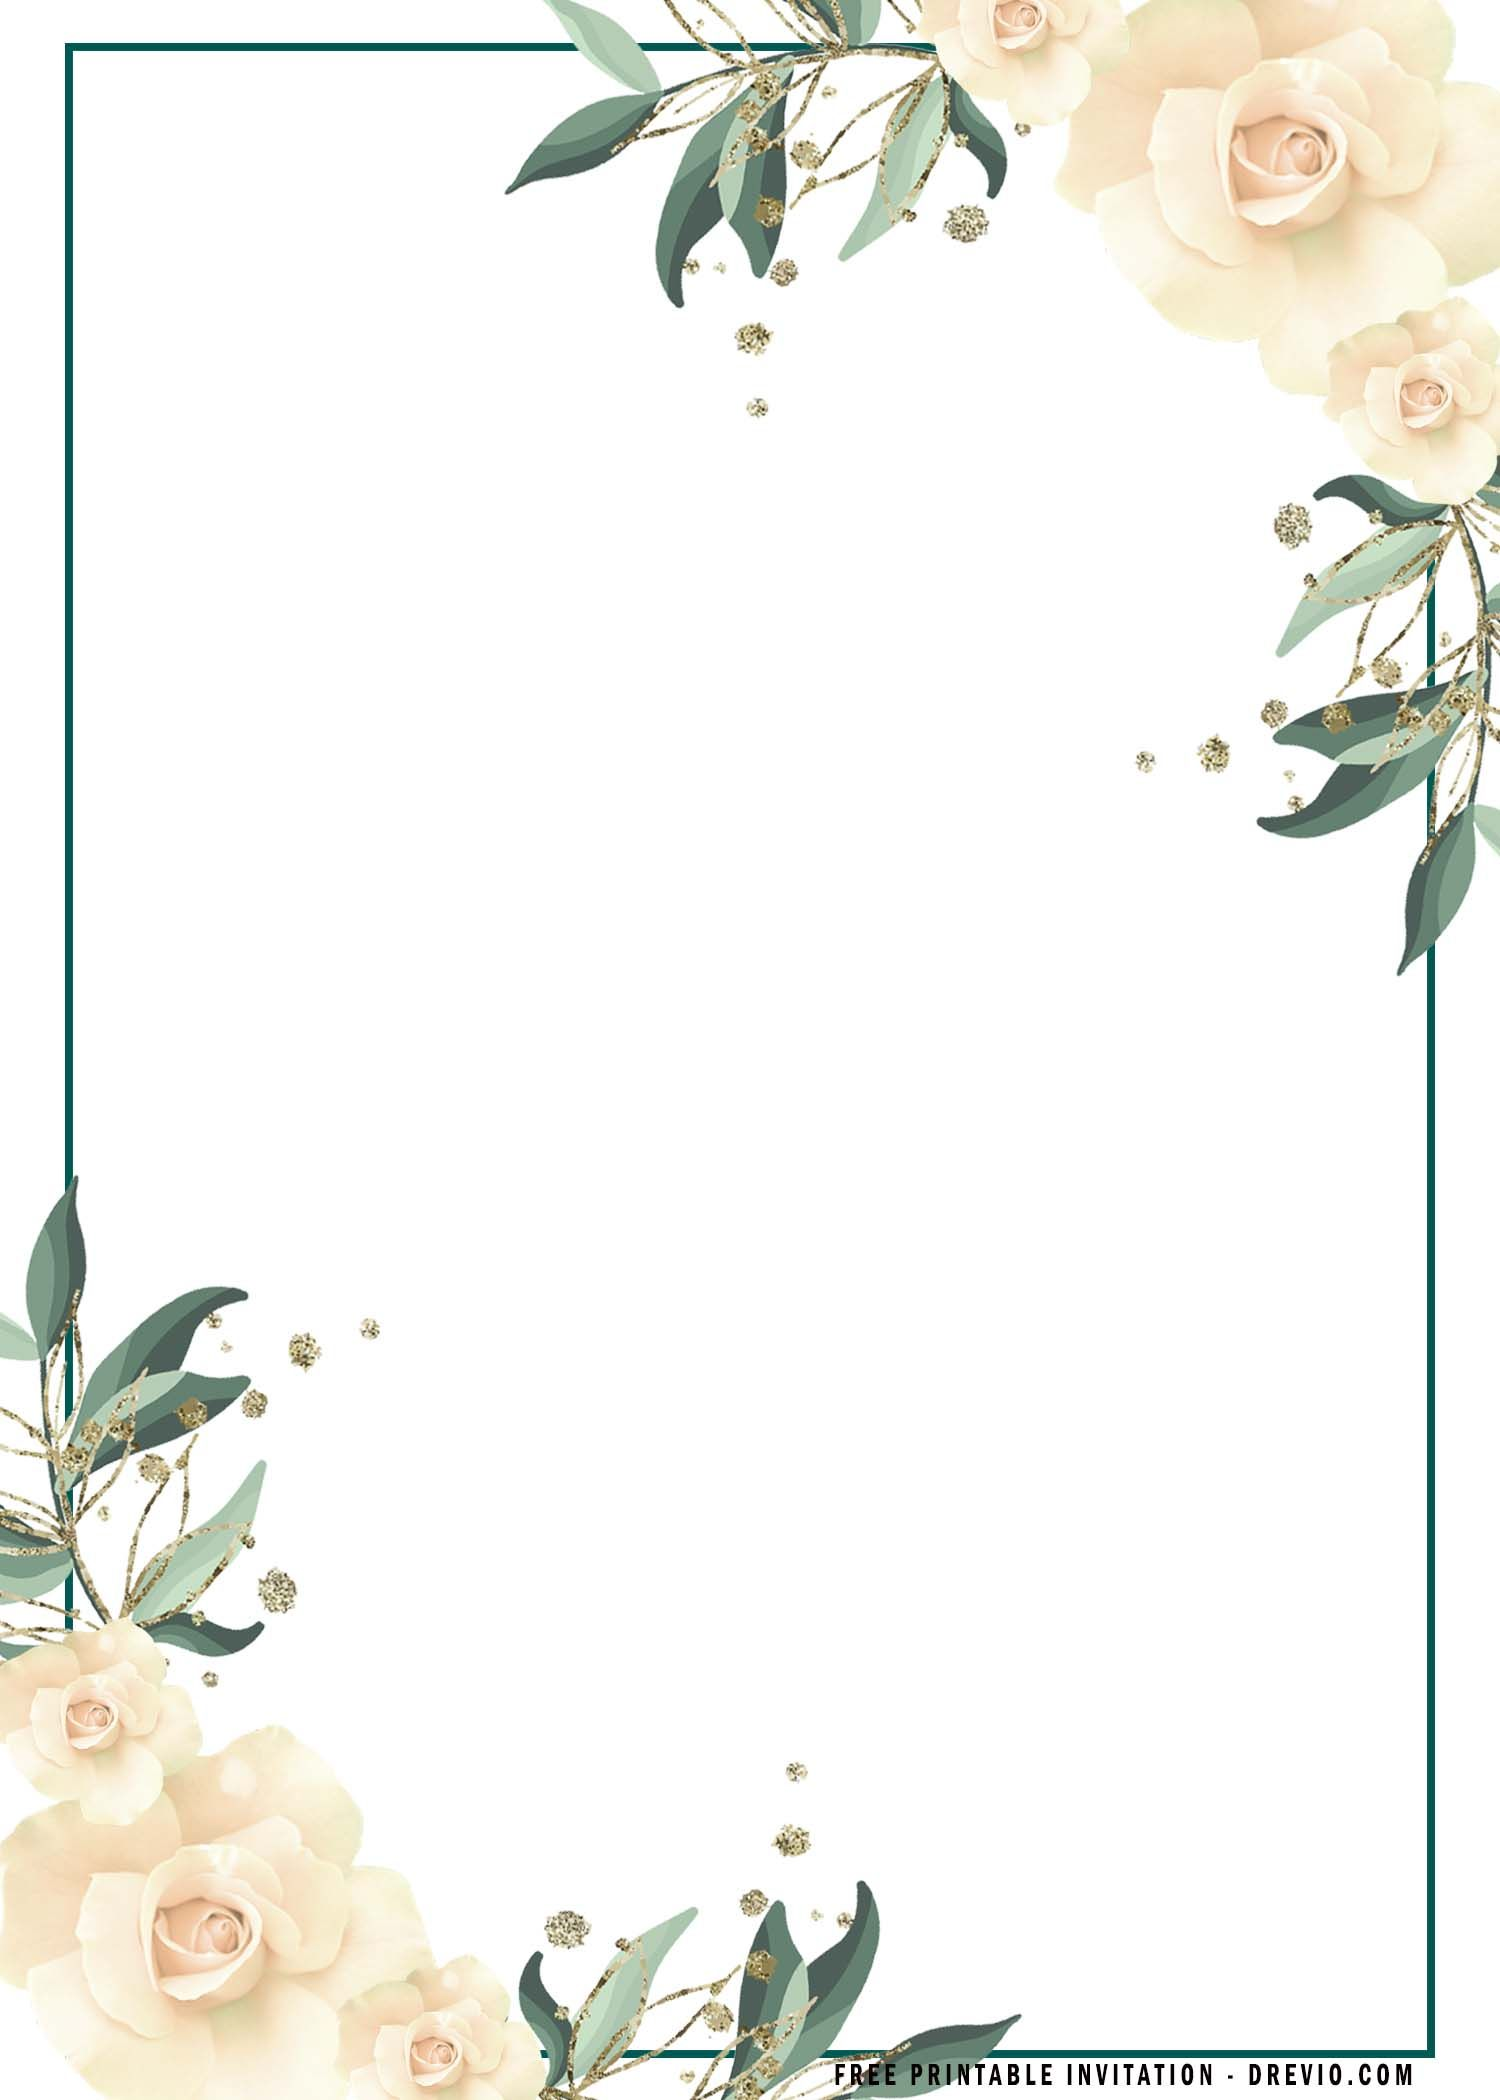 Free Printable Boho Flower Invitation Templates In 2021 Party Invite Template Floral Invitations Template Floral Birthday Invitations